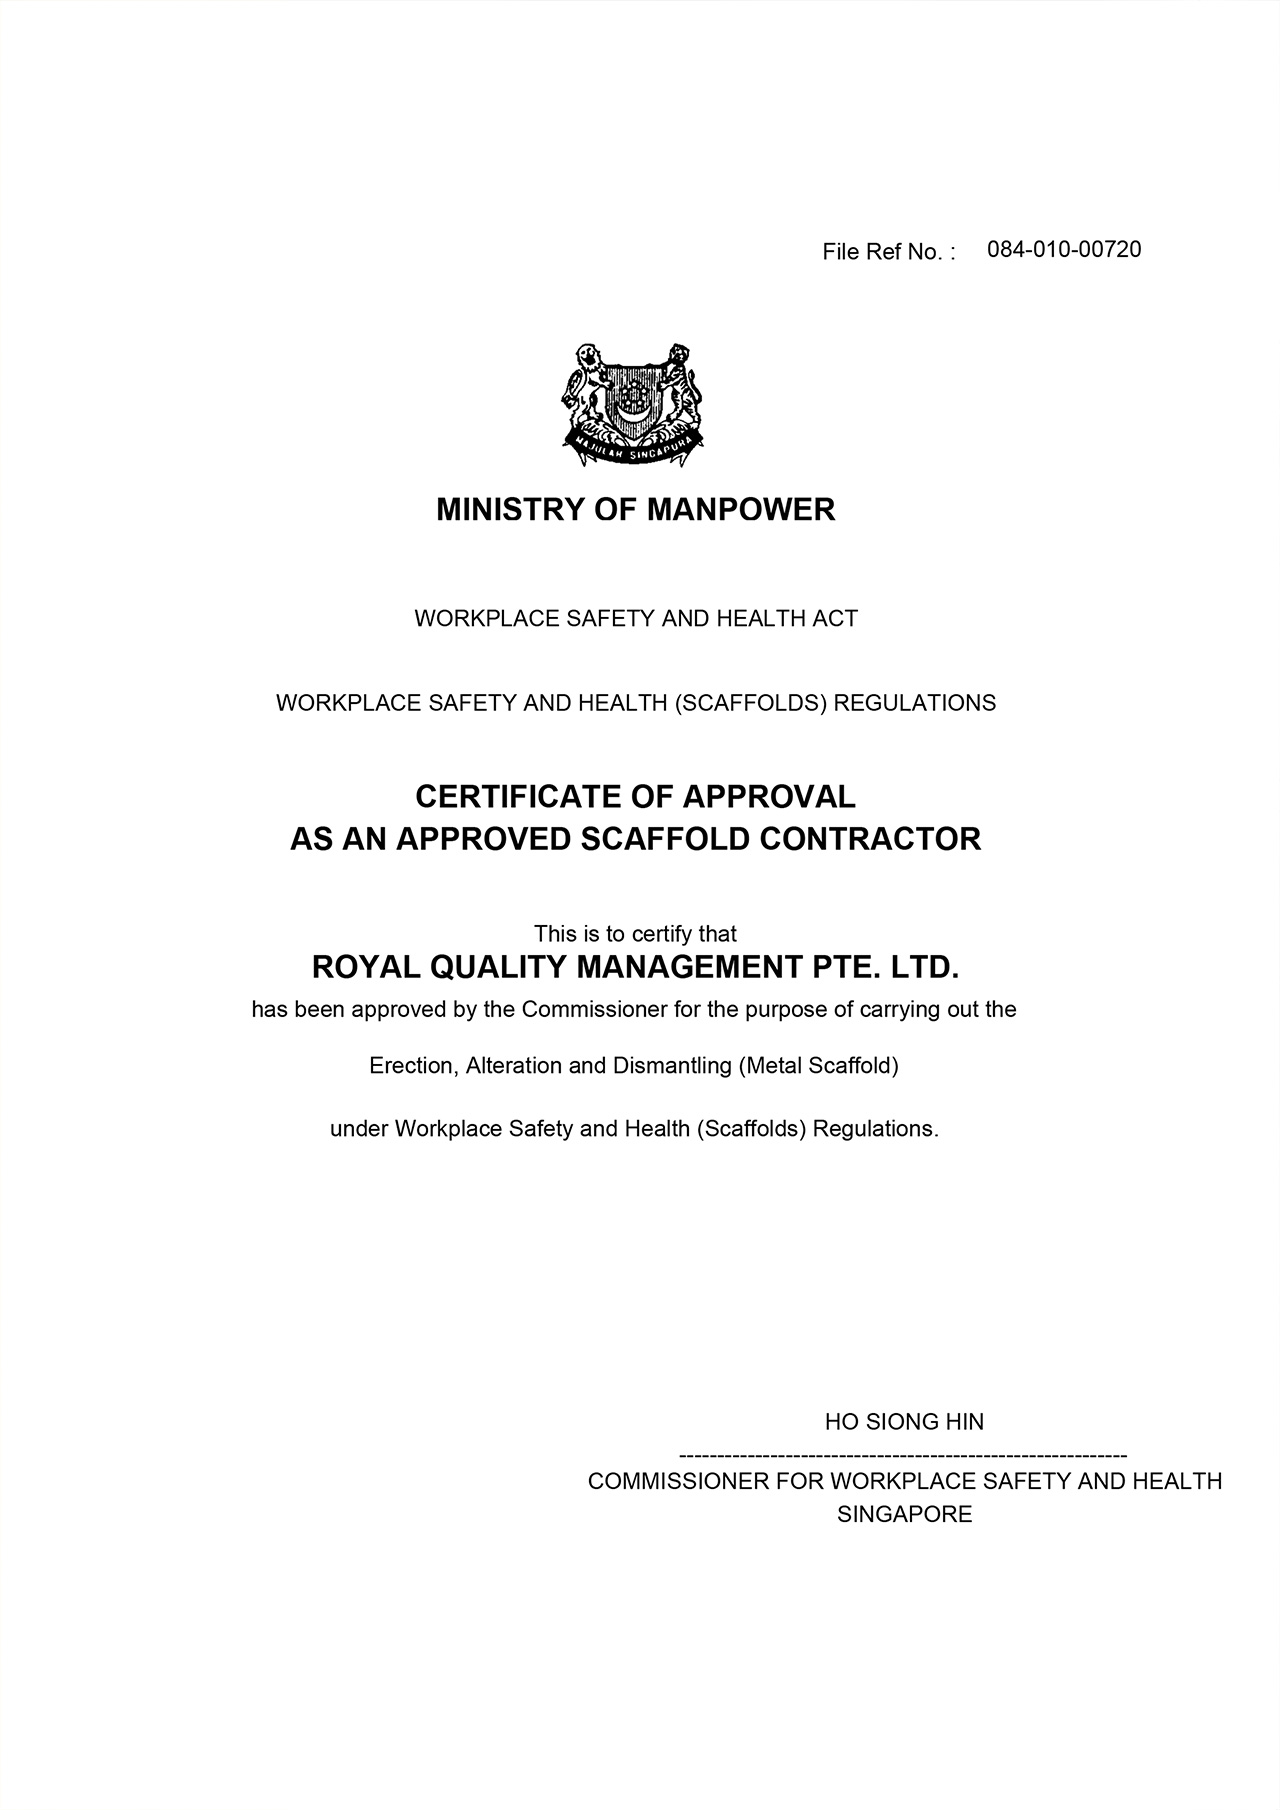 Certificates APPROVED SCAFFOLD CONTRACTOR